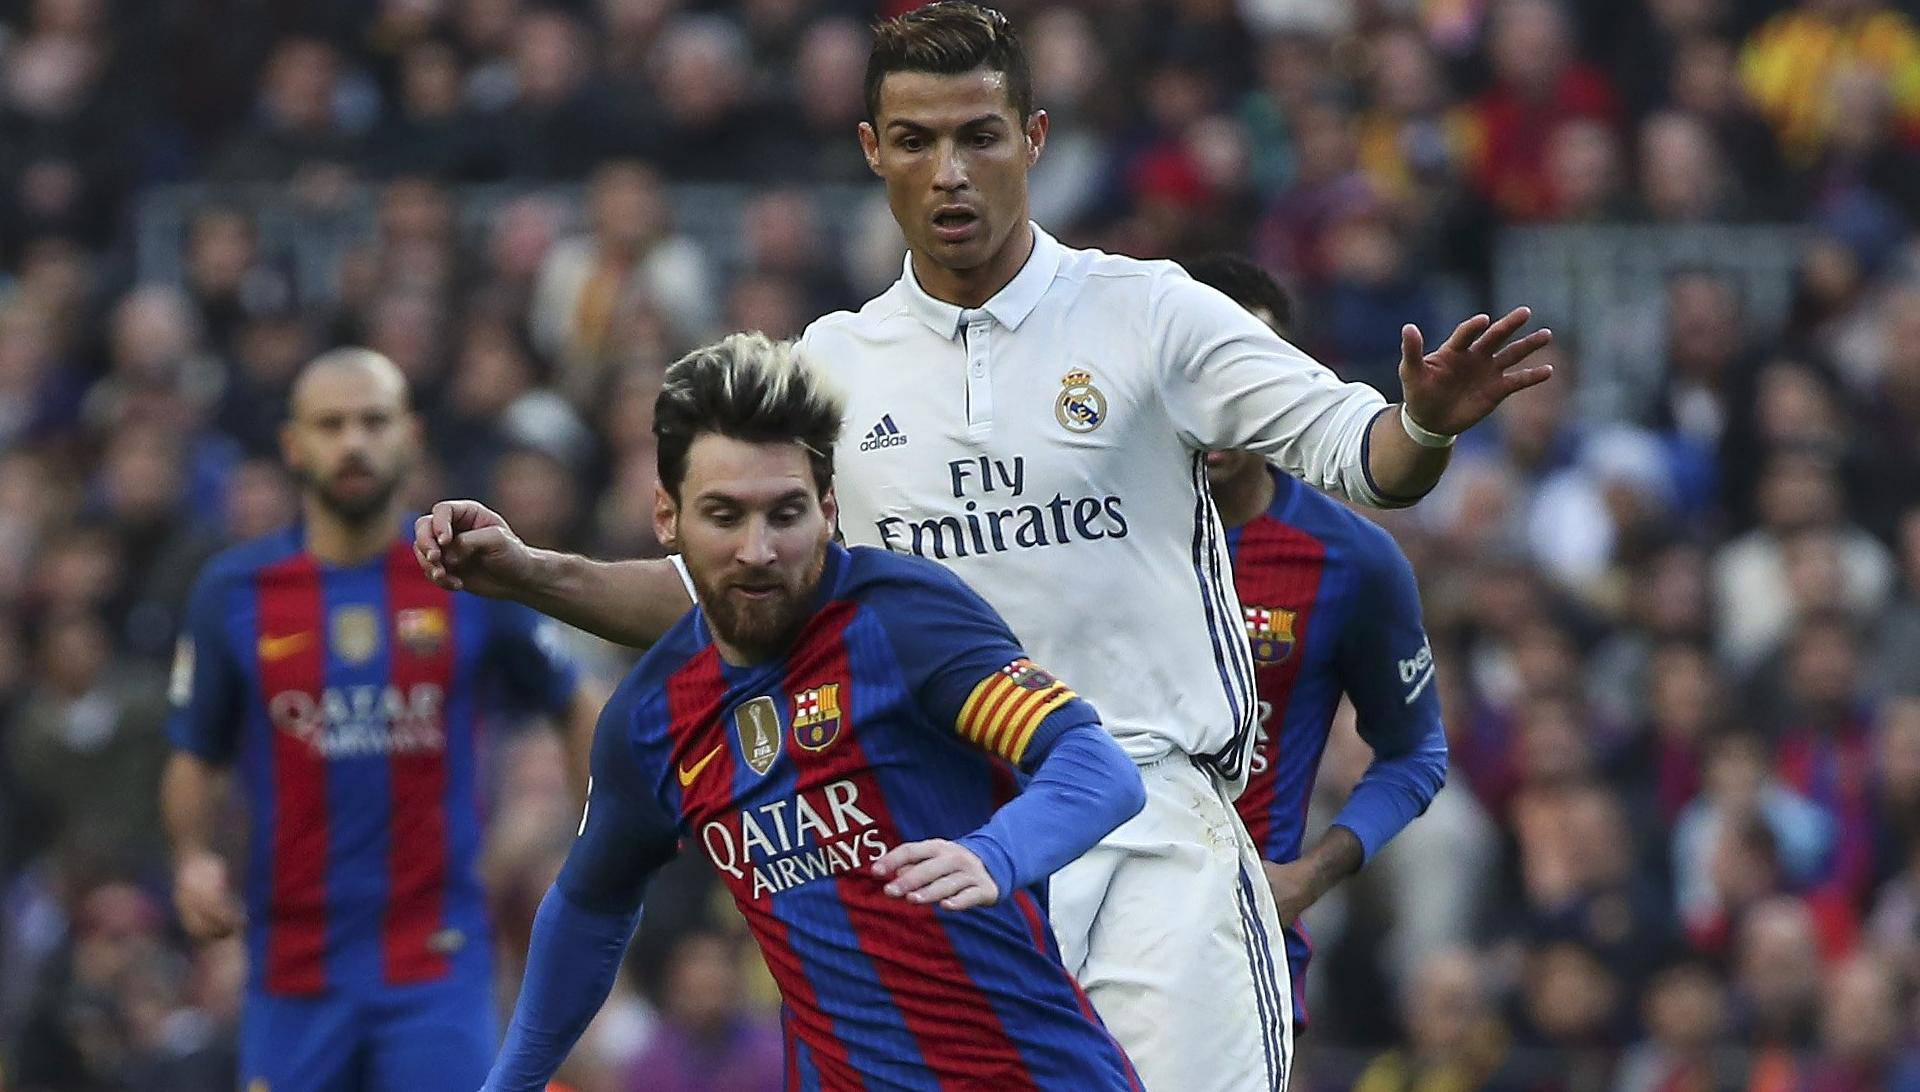 Football Soccer - Barcelona v Real Madrid - Spanish La Liga Santander